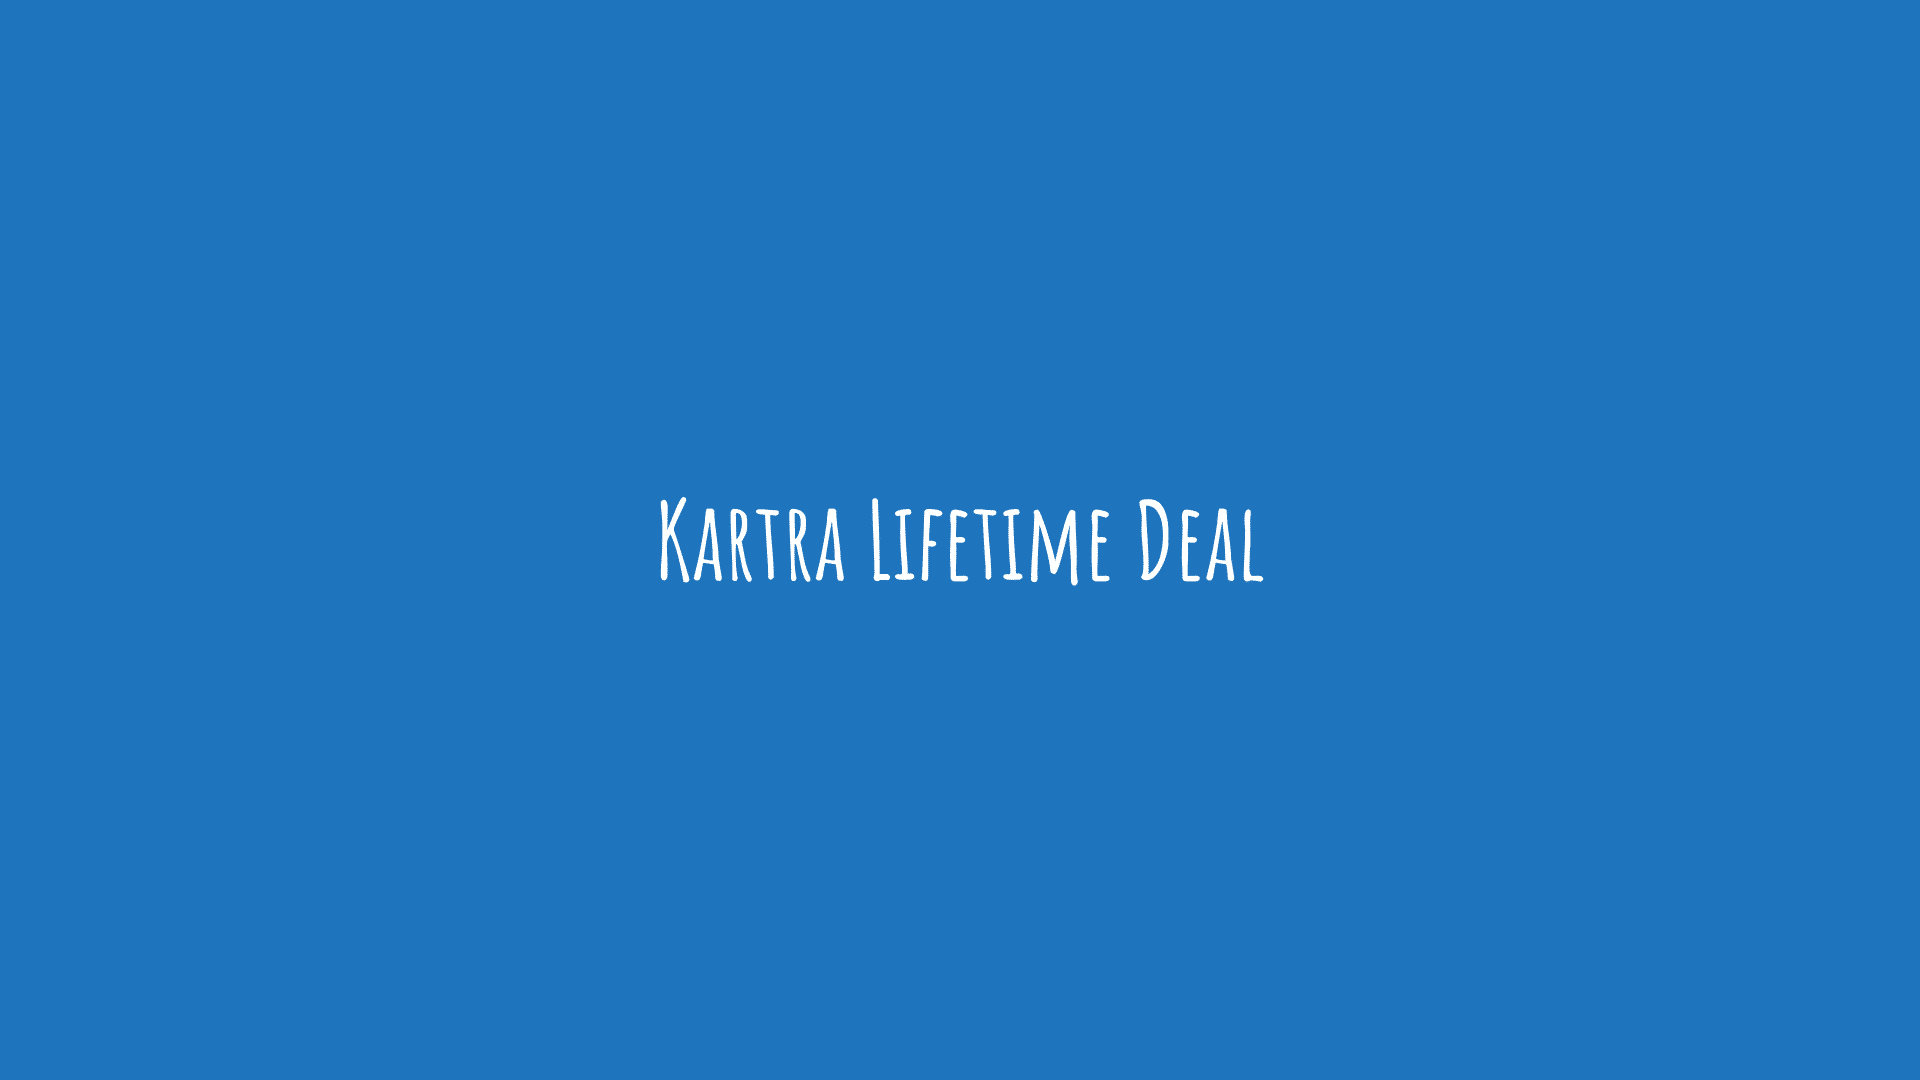 Kartra Lifetime Deal